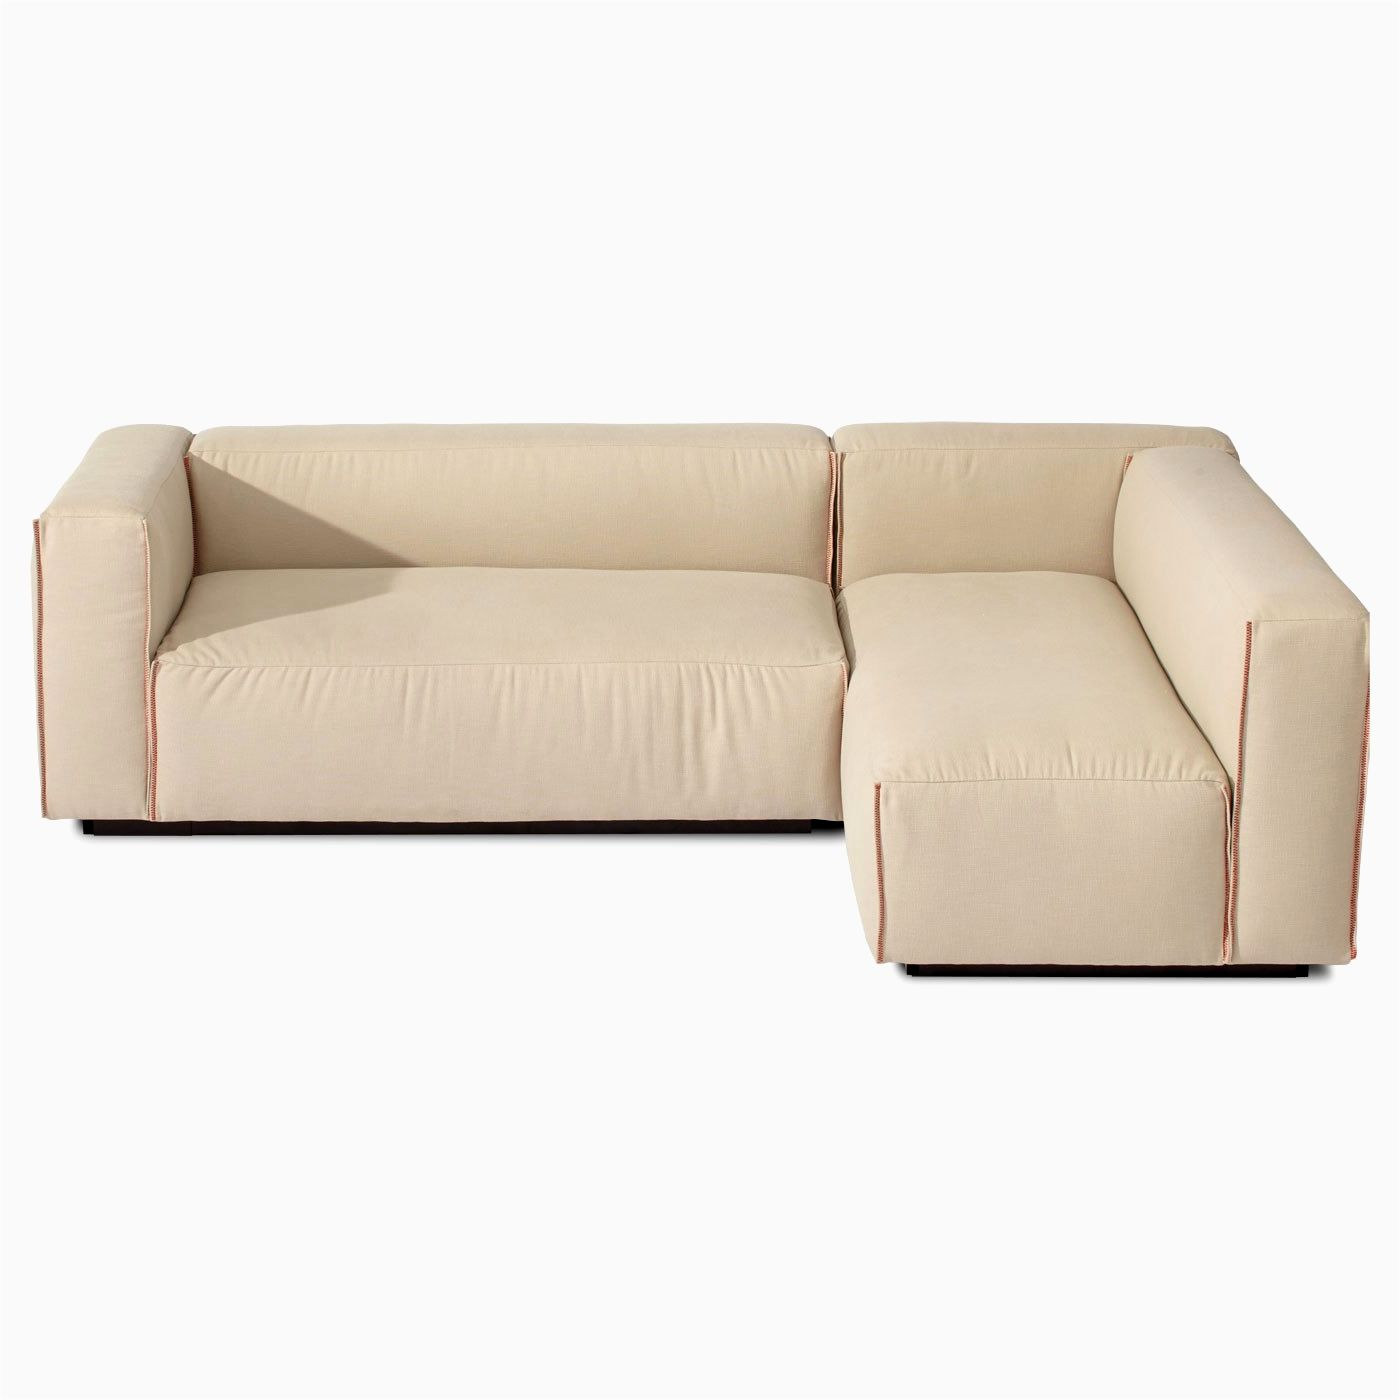 new sofa beds for sale photograph-Modern sofa Beds for Sale Online